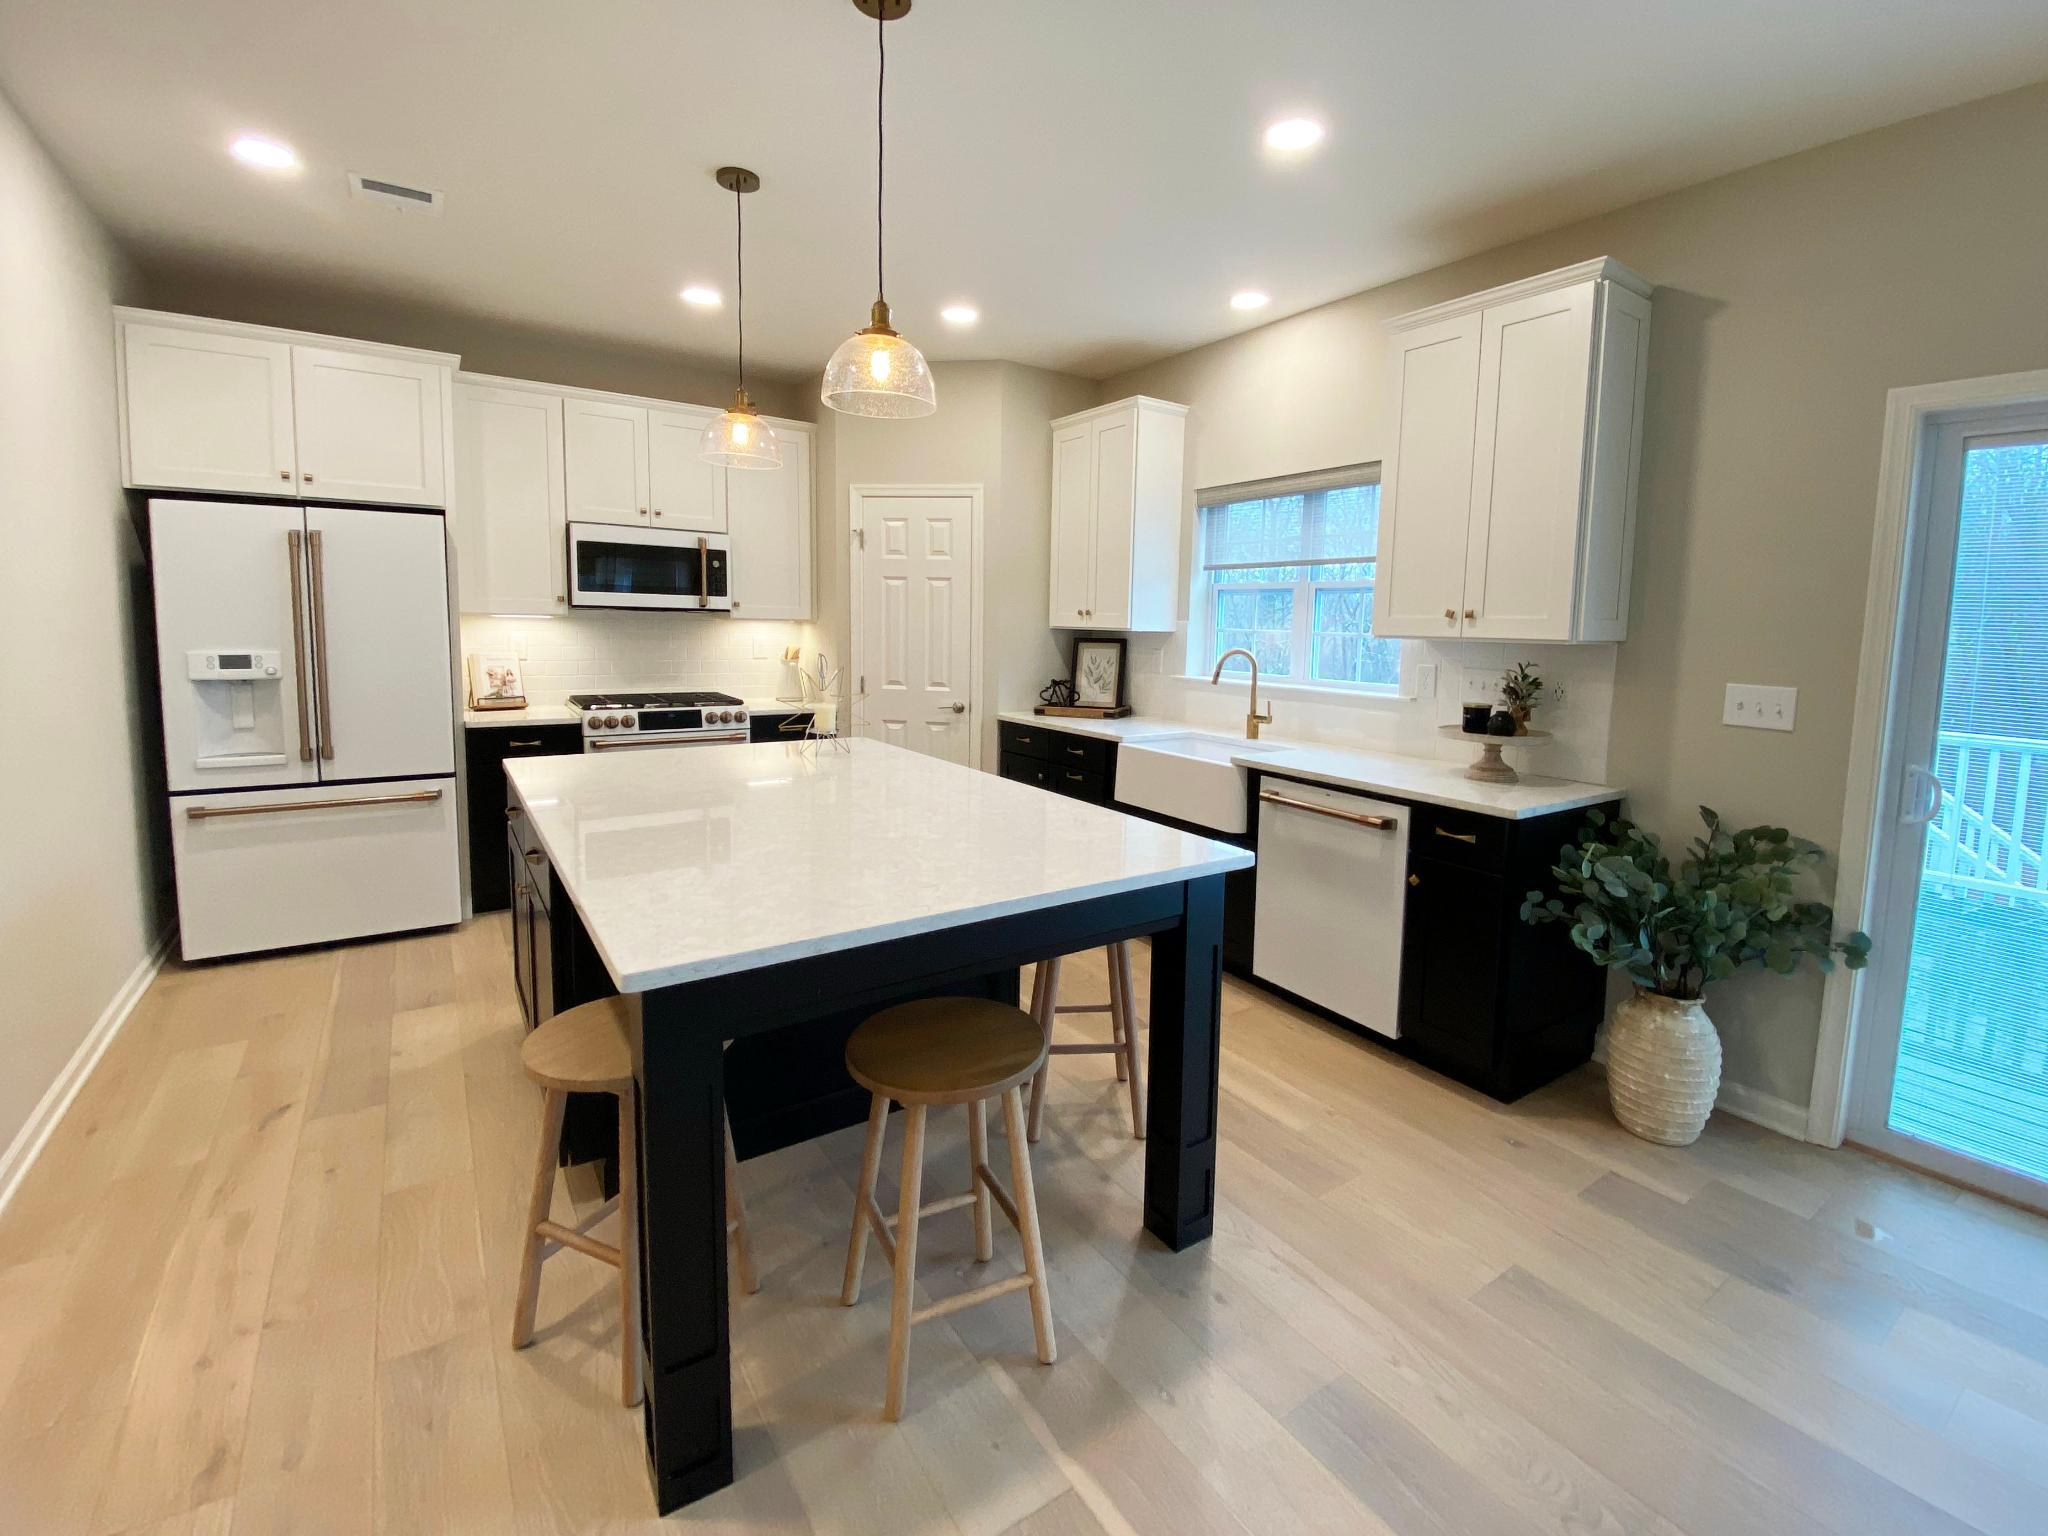 Kitchen featured in the Morgan Traditional By Tuskes Homes in Scranton-Wilkes-Barre, PA